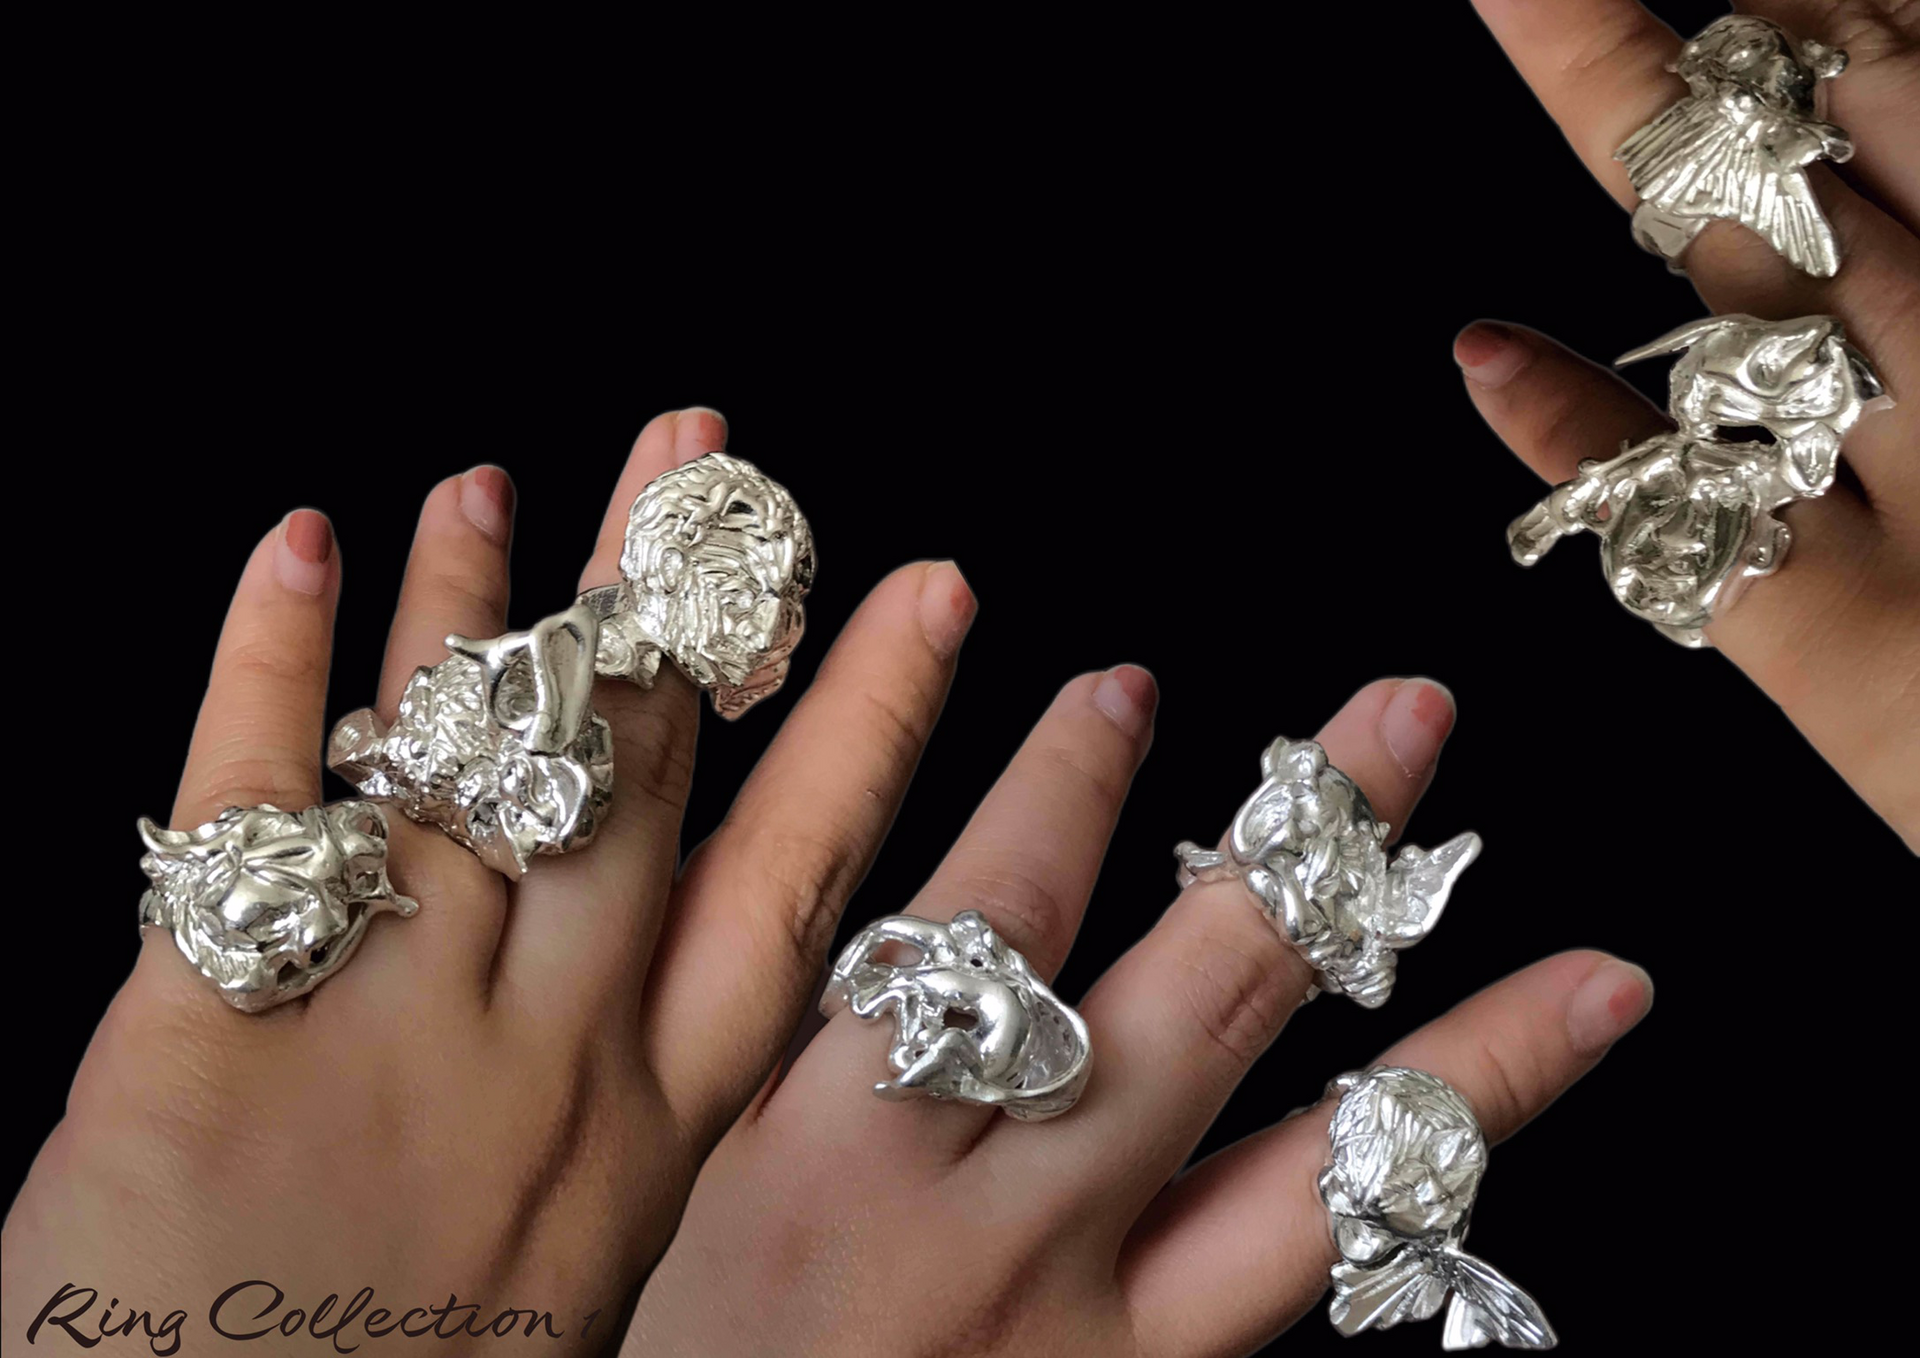 Ring collection relating to internal fear